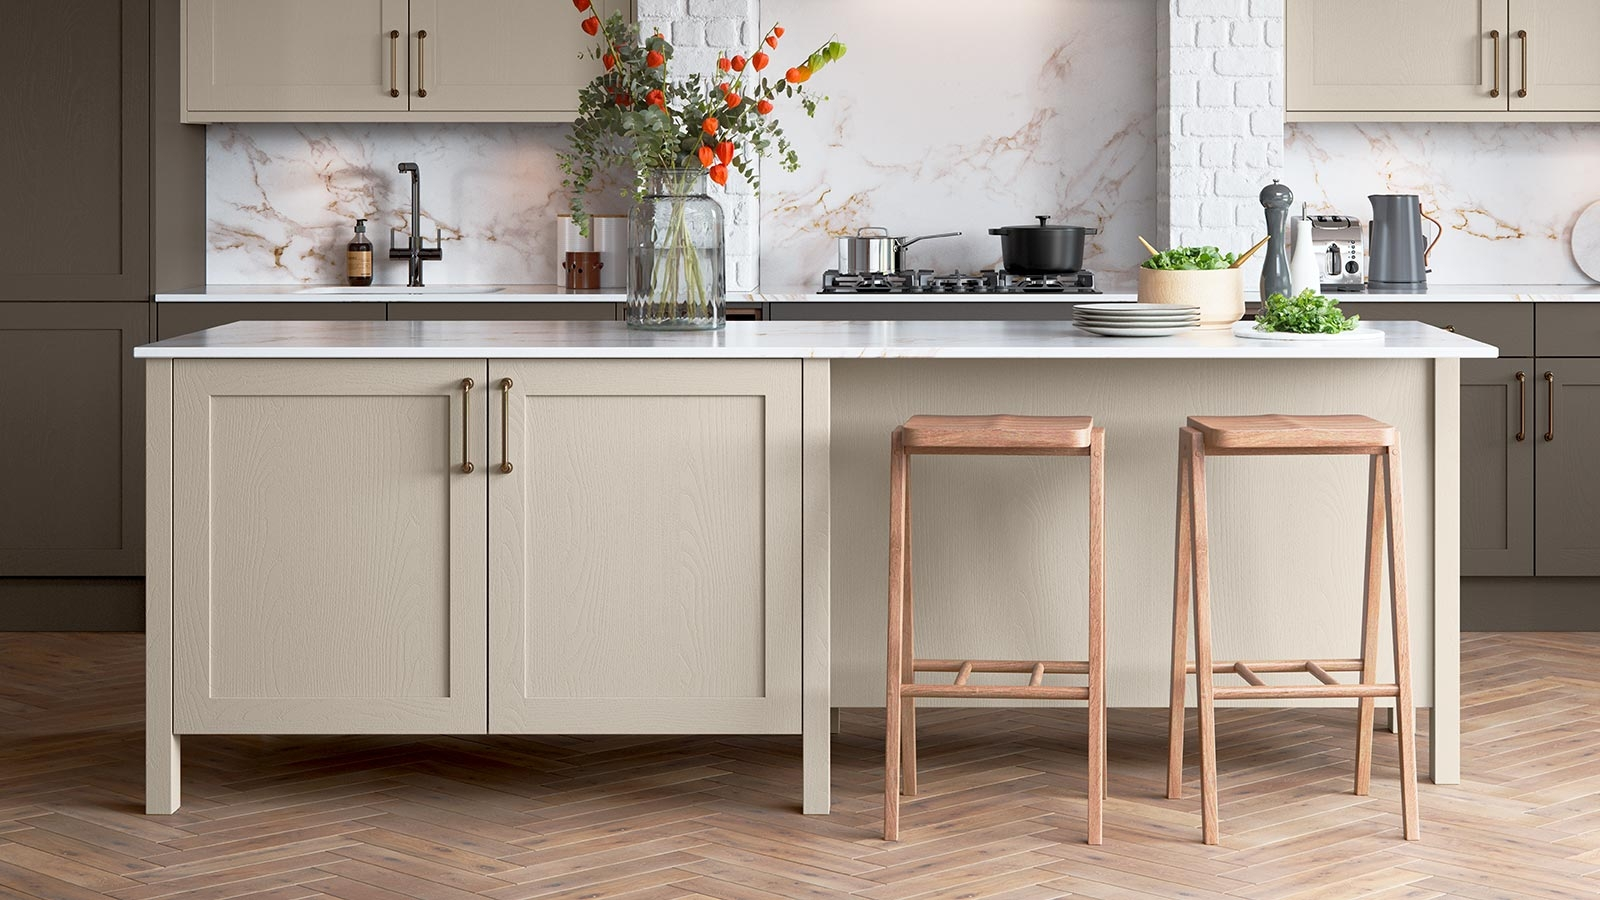 How to choose your freestanding kitchen island